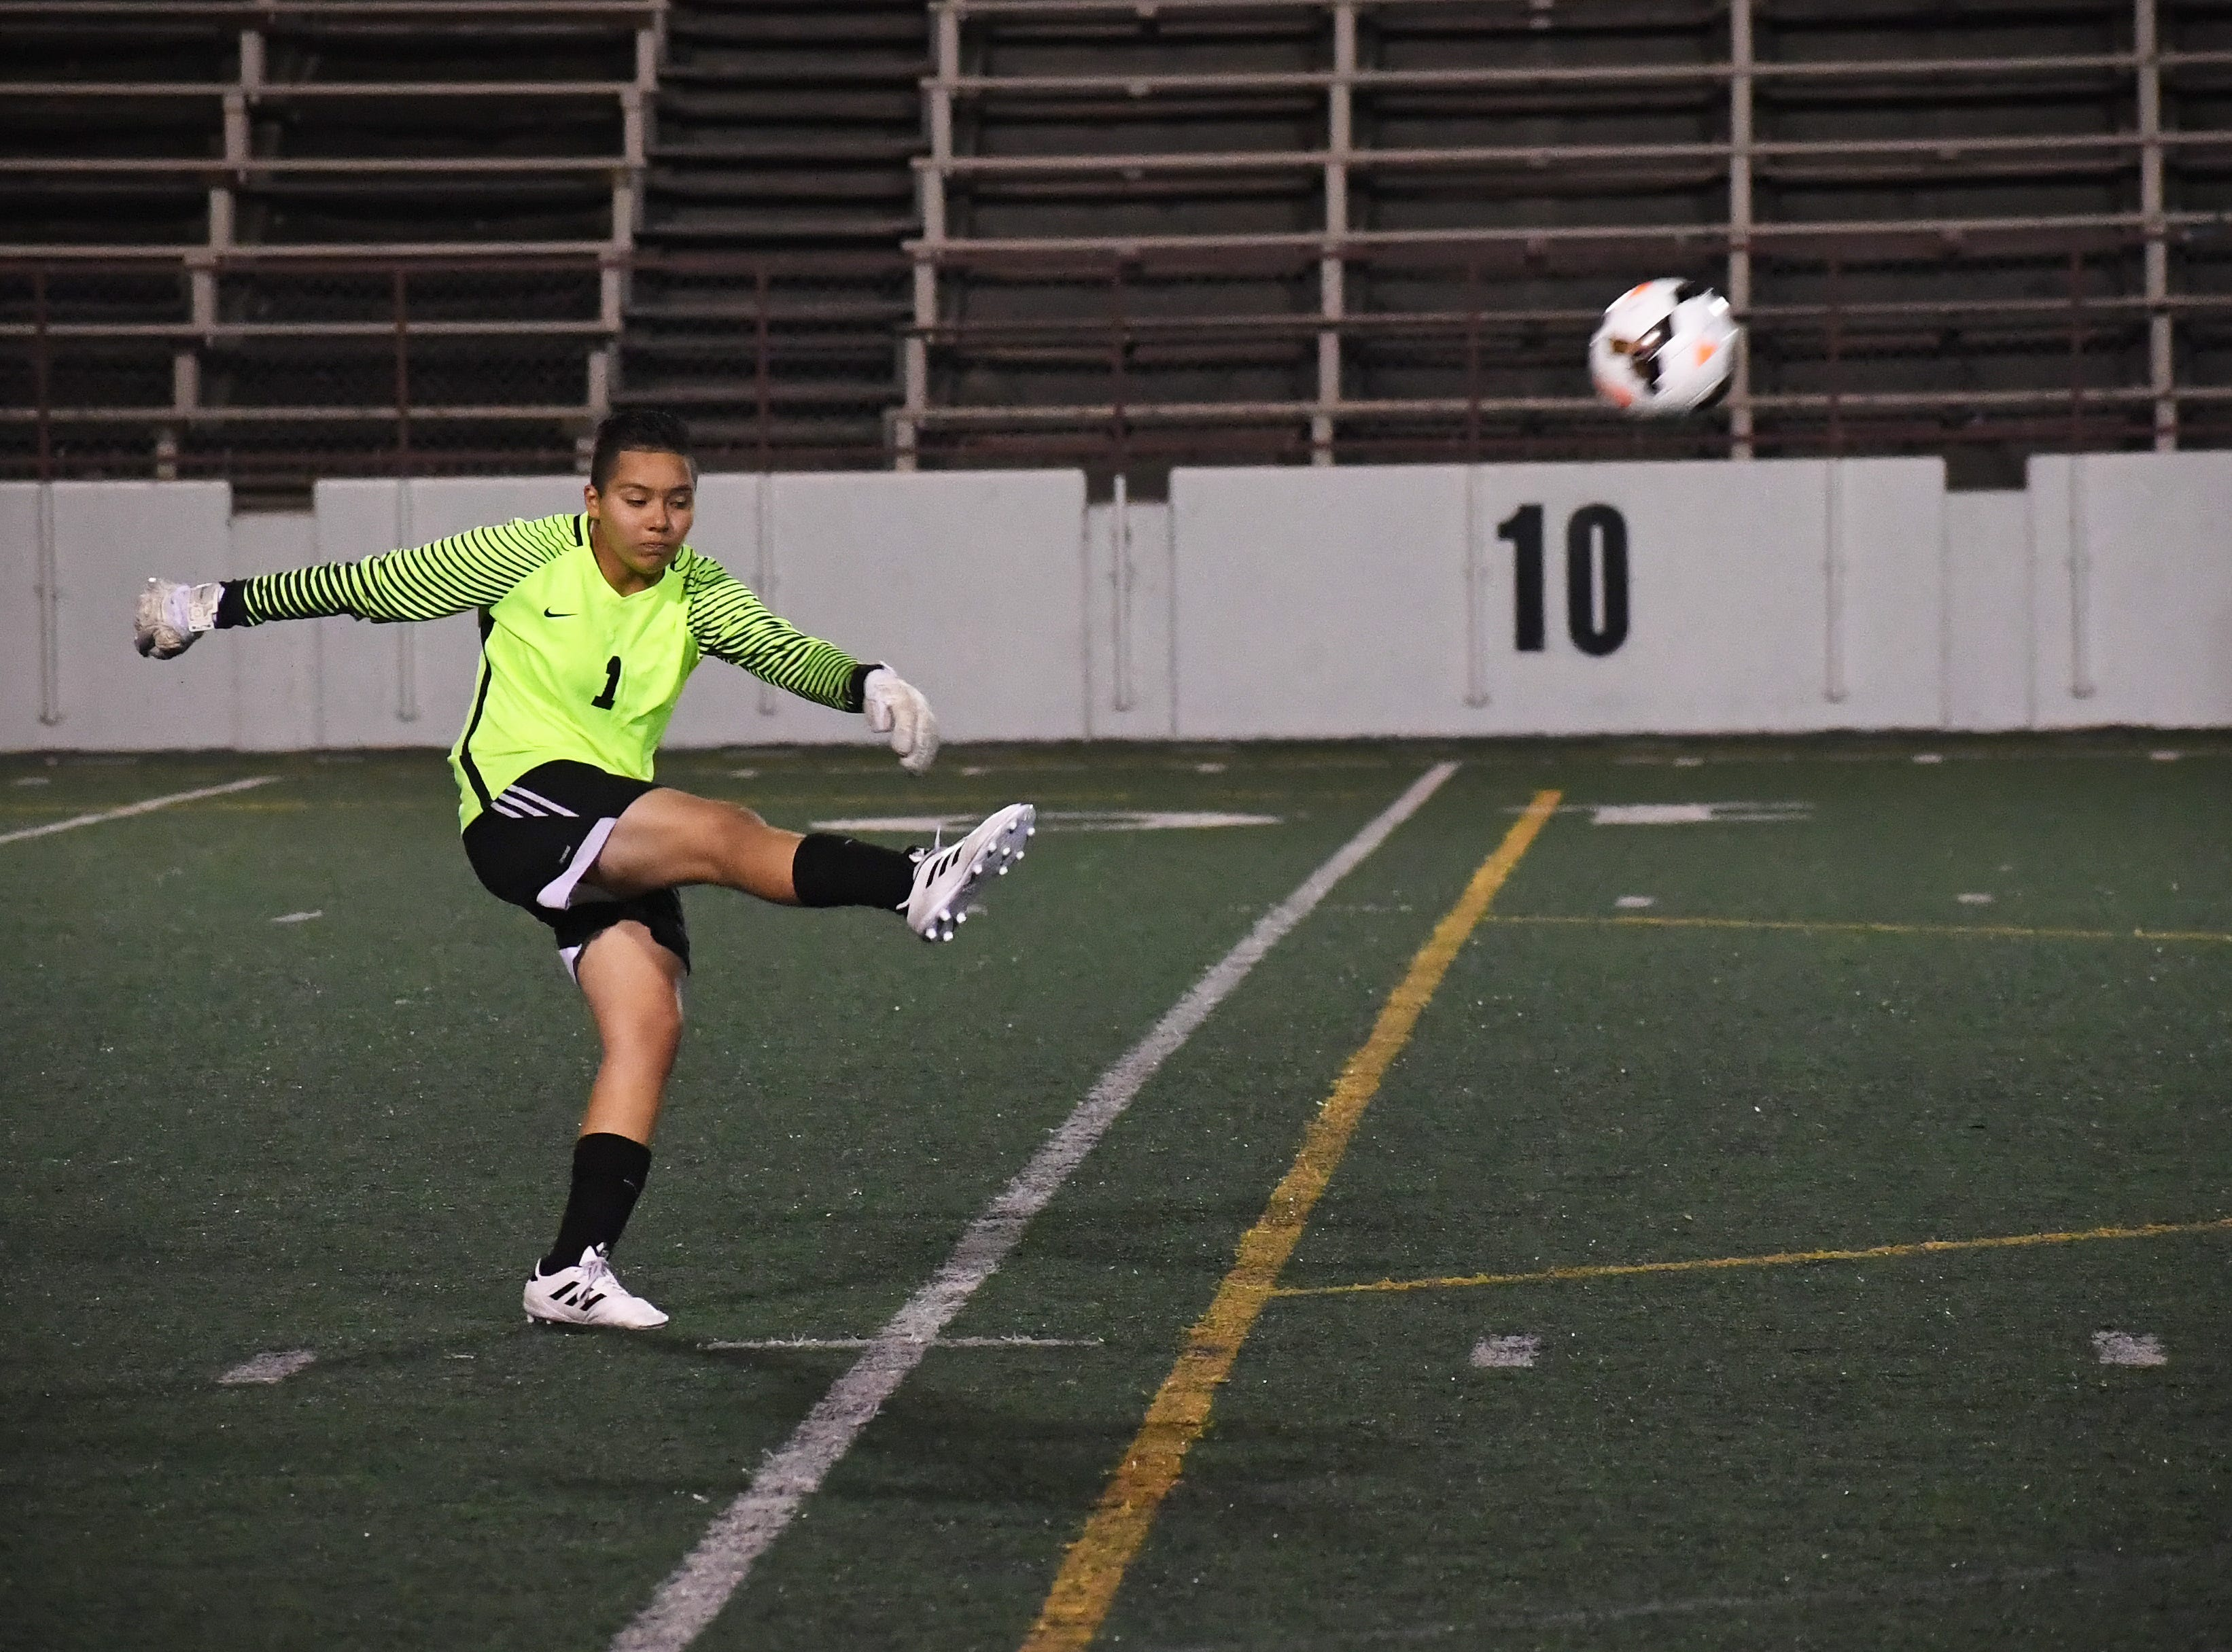 Goalkeeper Laryssa Venegas (1) had eight saves in the win over Pacific Collegiate.